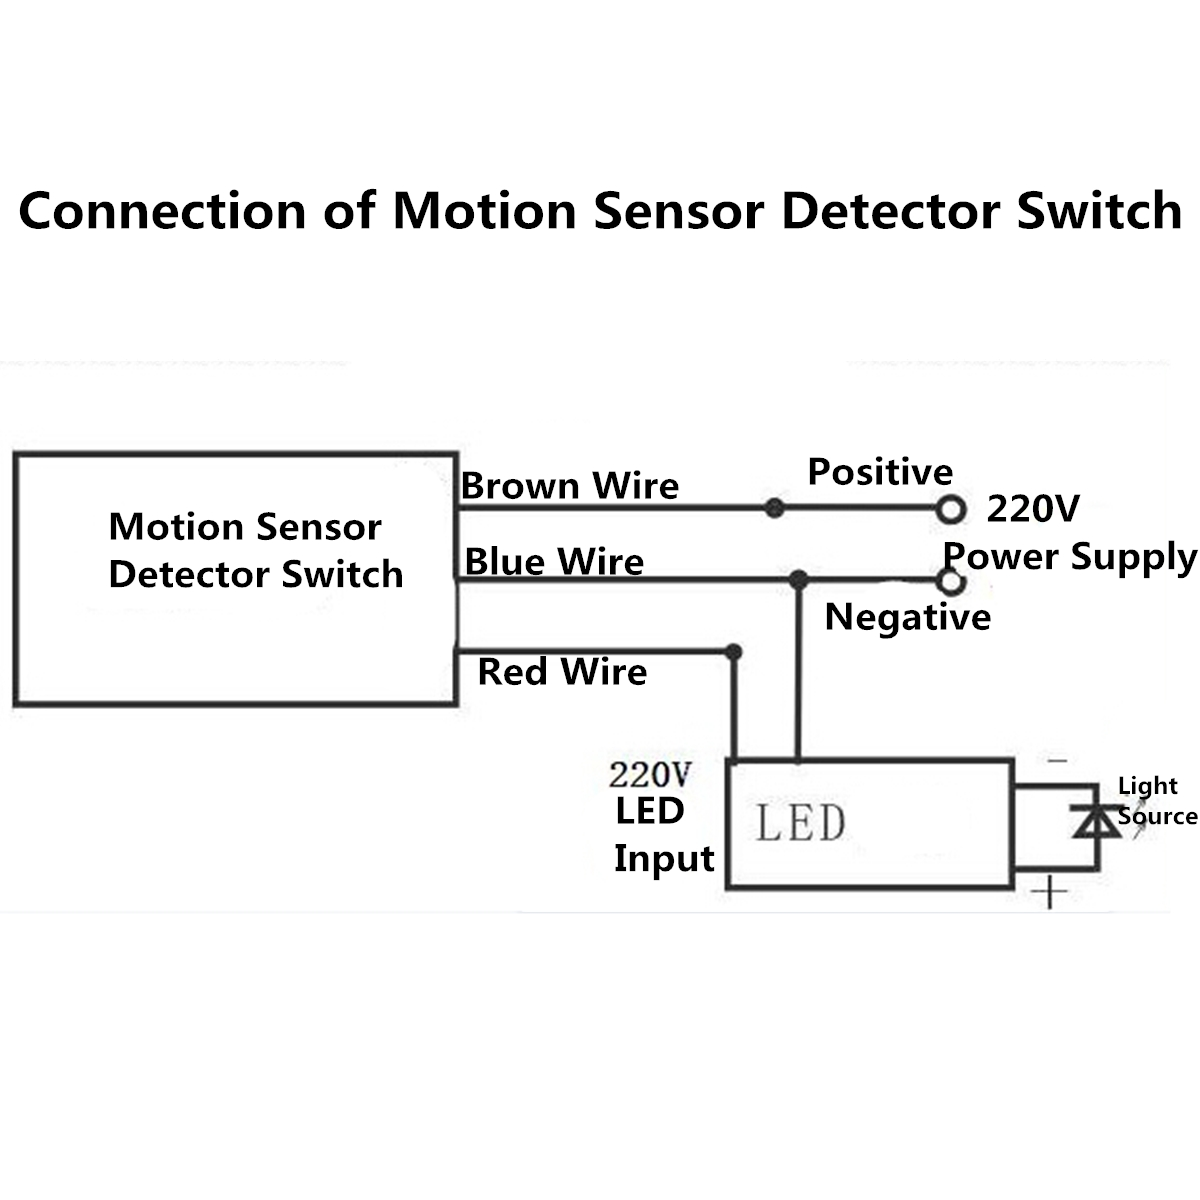 medium resolution of light switch wiring diagram 220v wiring librarymotion sensor light switch wiring diagram small pir circuit typical